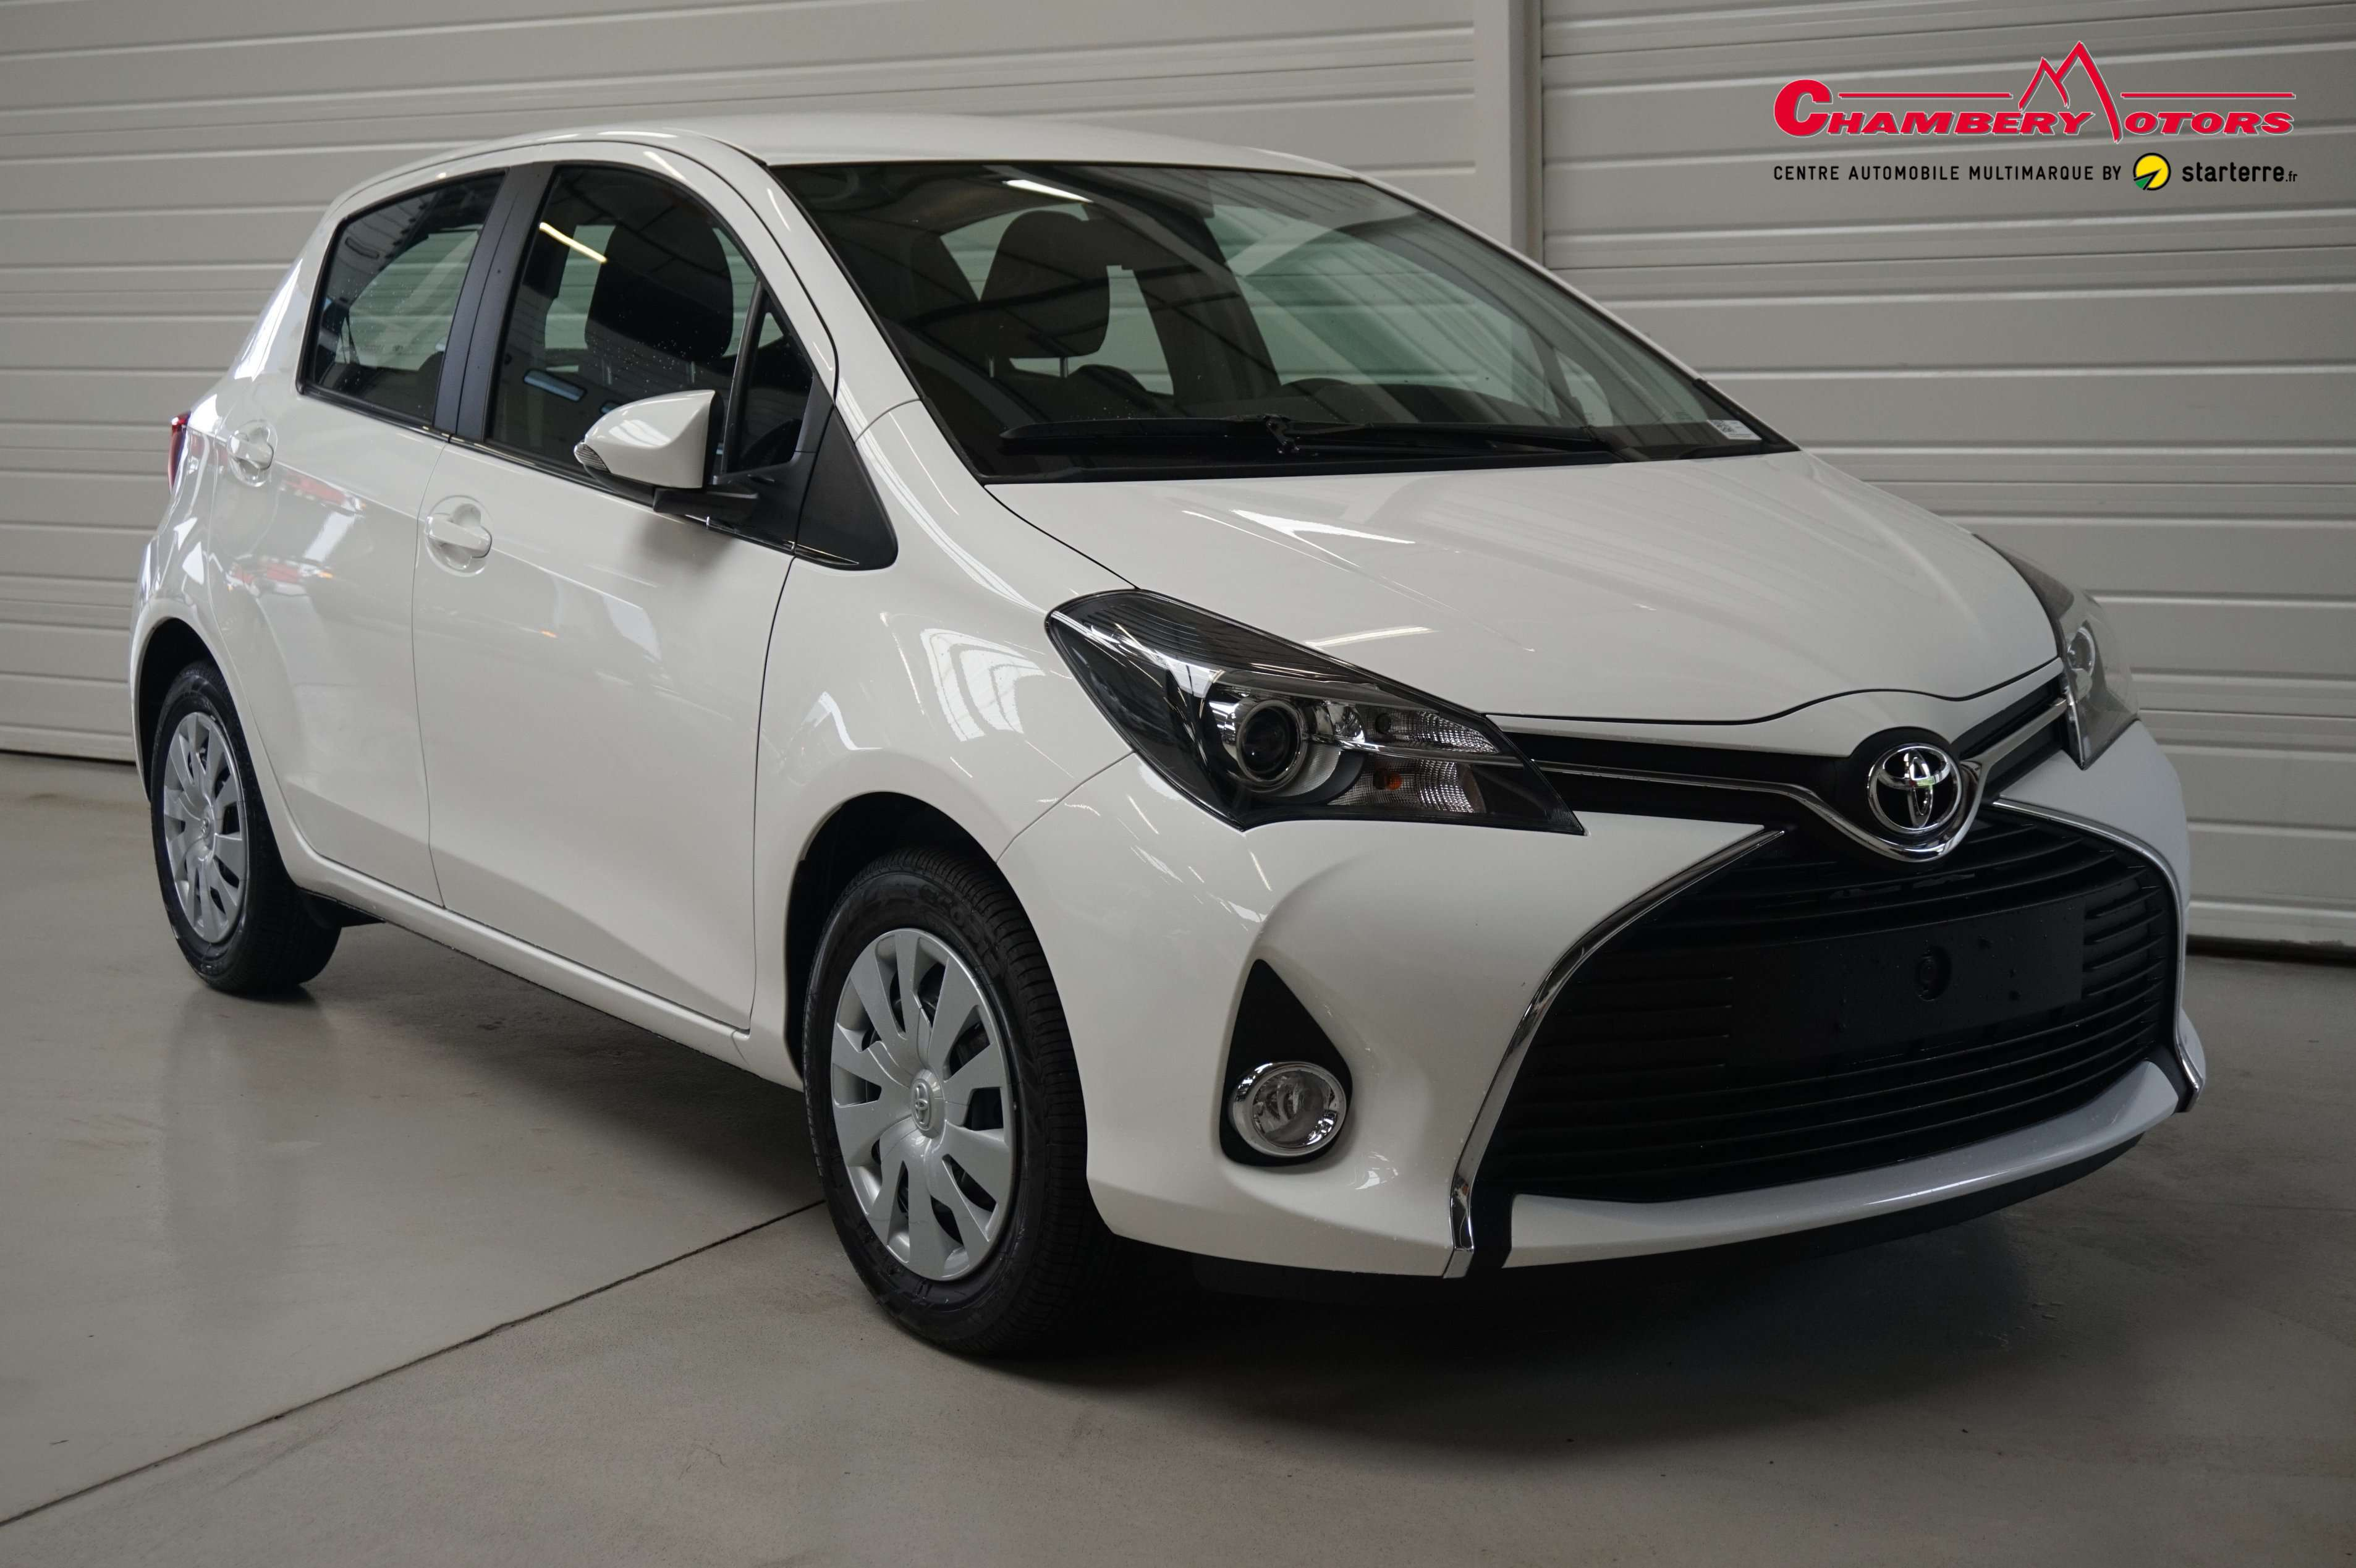 voiture toyota yaris toyota 69 vvt i dynamic occasion essence 2016 10 km 11995. Black Bedroom Furniture Sets. Home Design Ideas